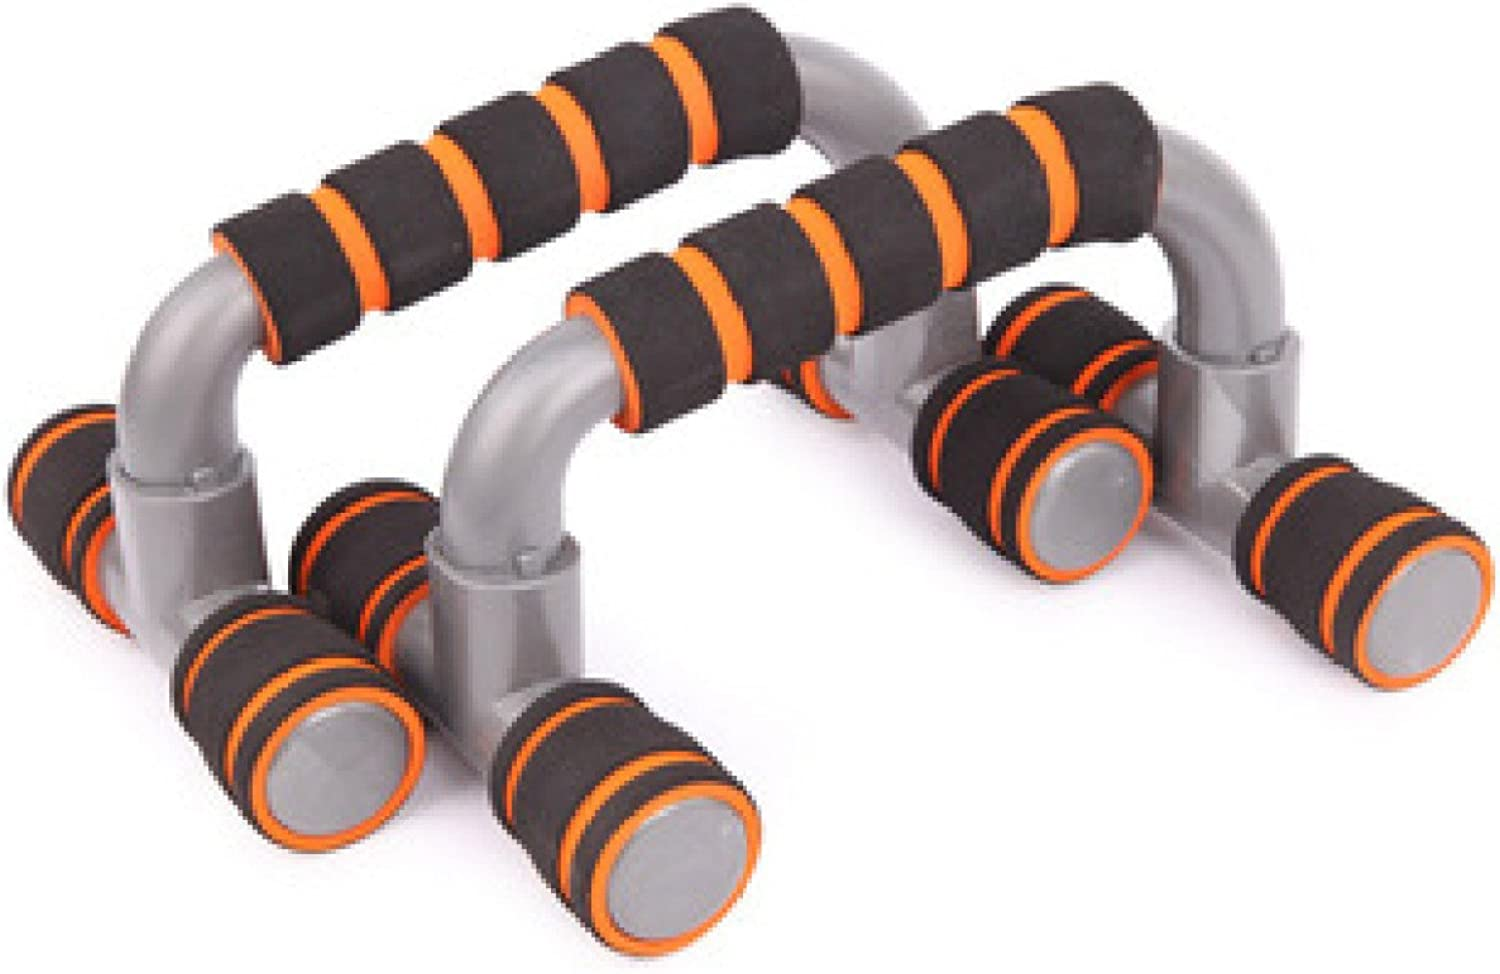 Push-ups Handles Fitness Detachable Household Equipment Exercise Arm Muscles